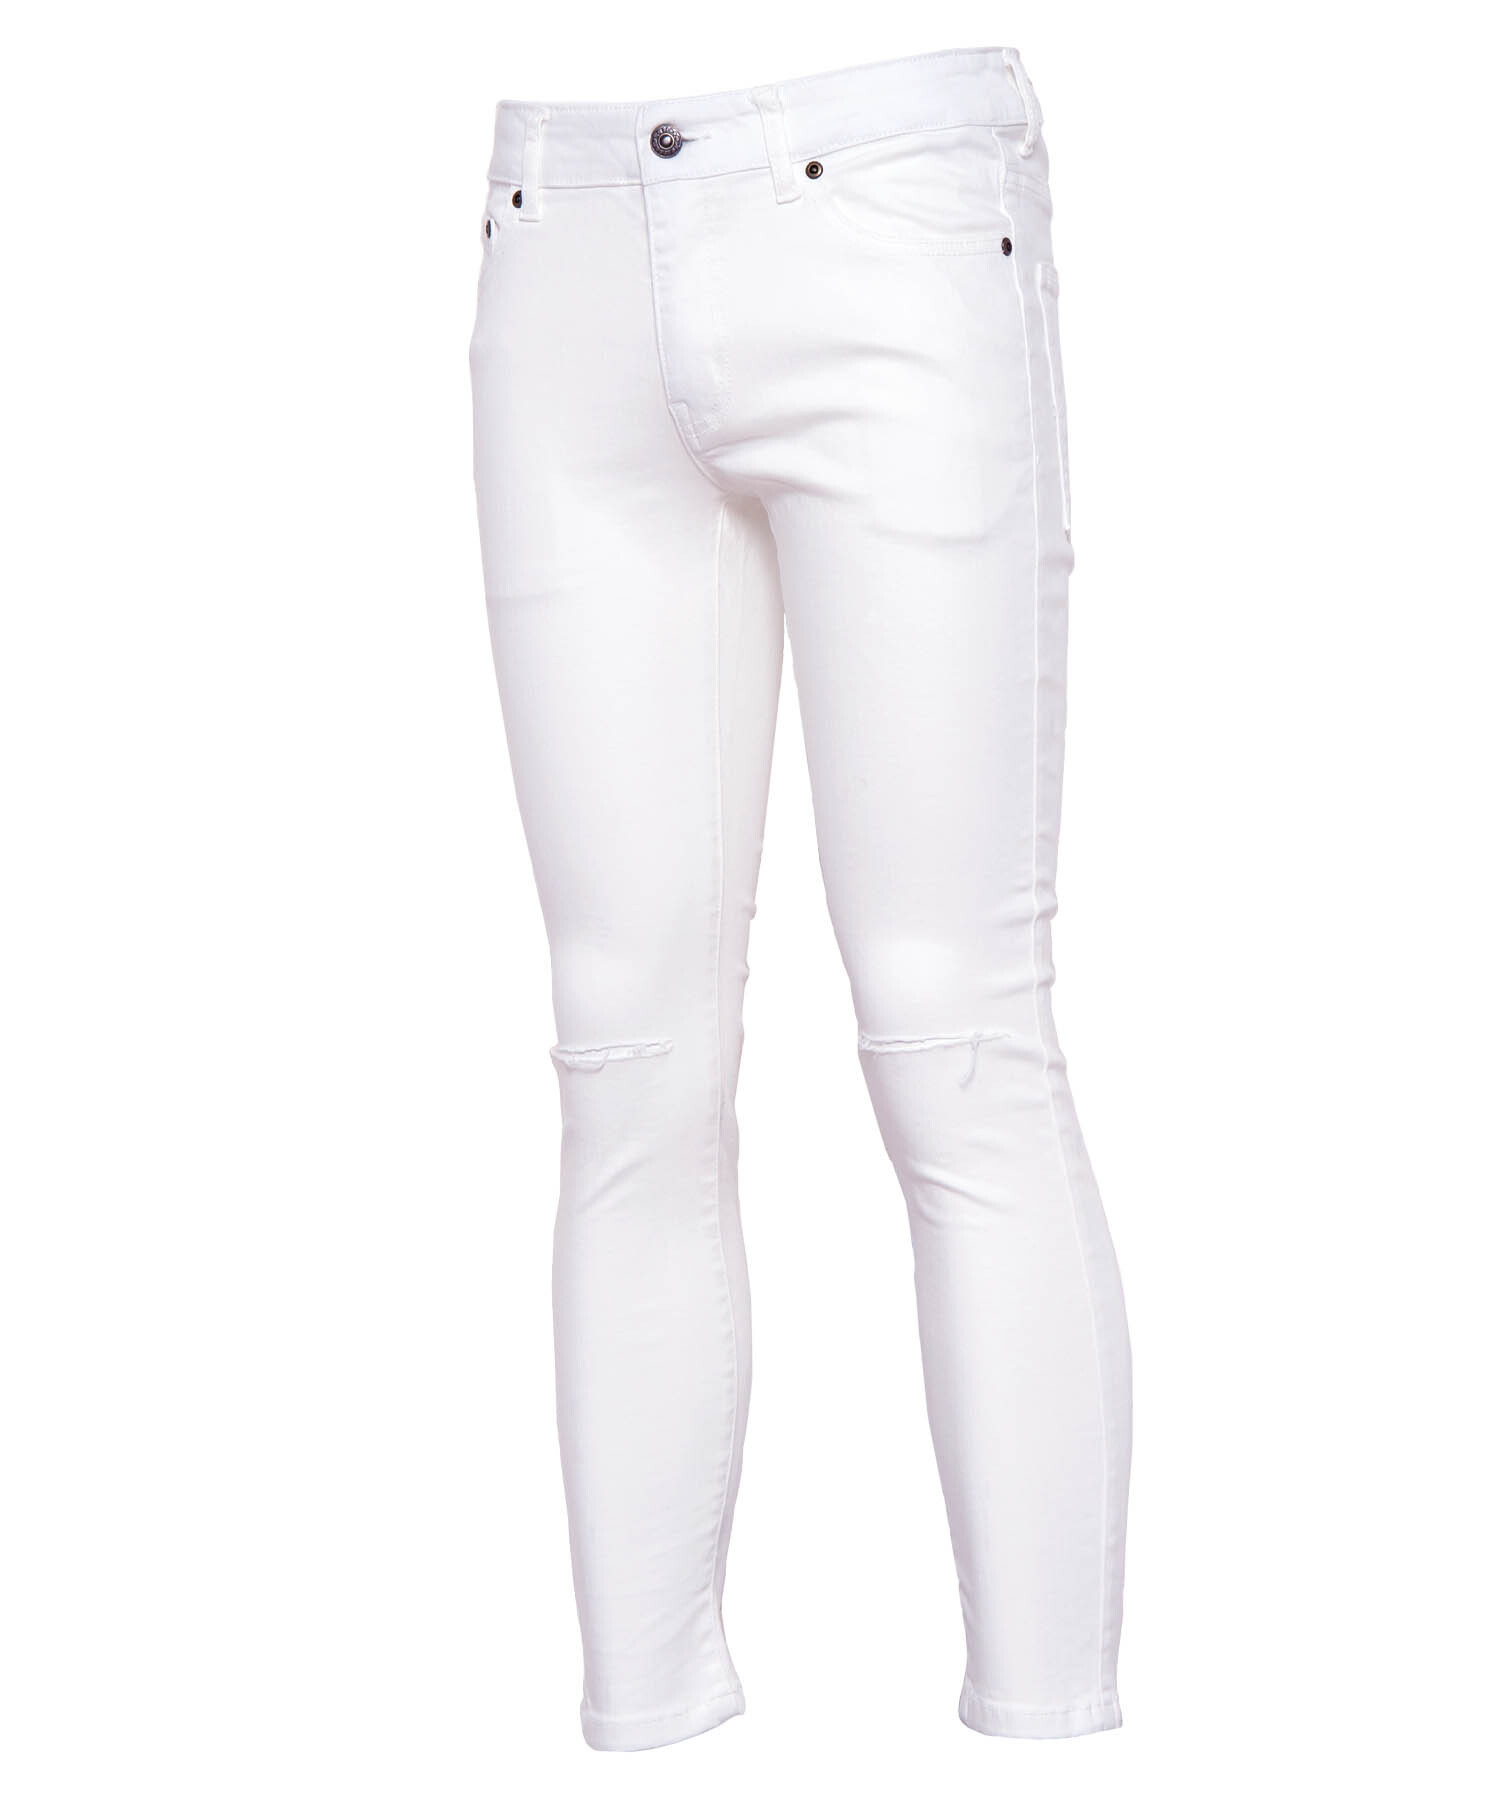 HYPER STRETCH COLOR SKINNY PANTS[REP093]